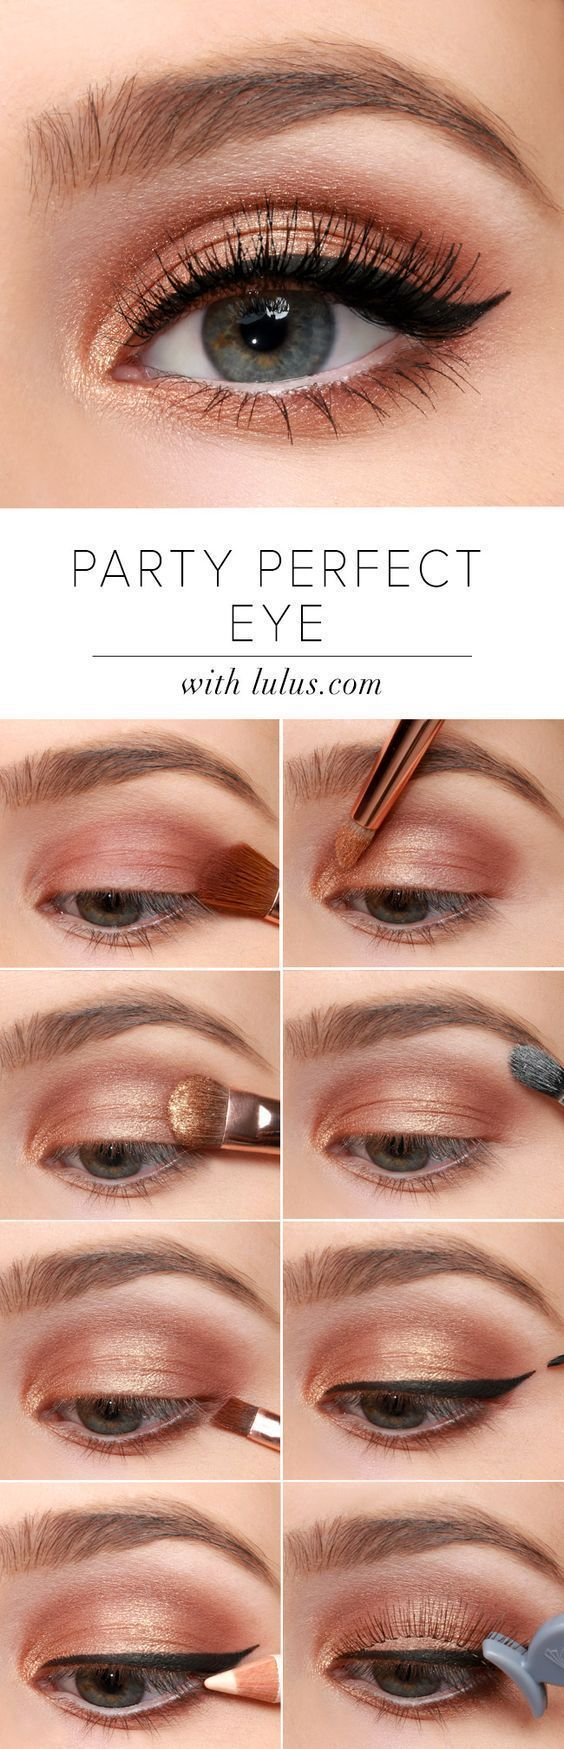 Lulus How-To: Party Perfect Eye Makeup Instructions – #eye #HowTo #Instructions …